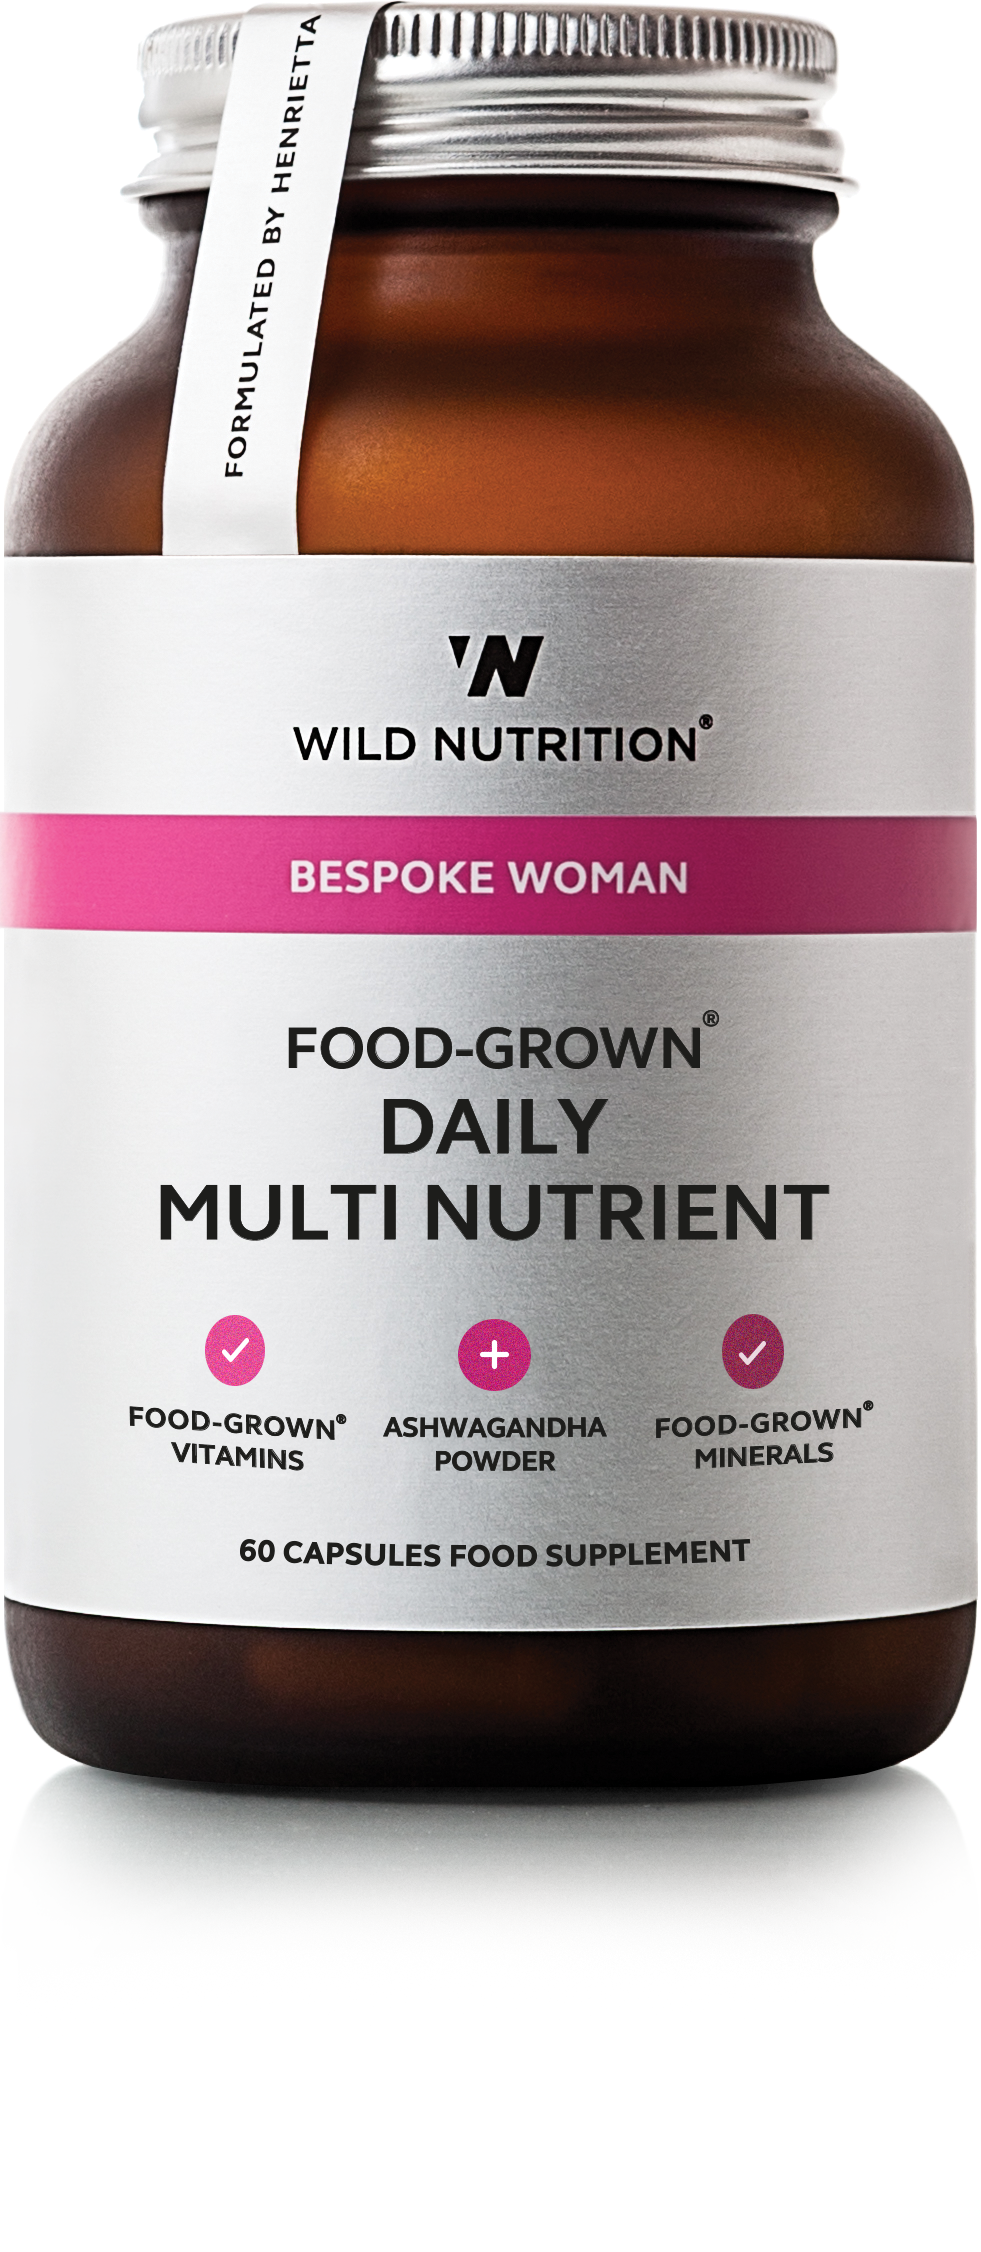 FOOD-GROWN® Daily Multi Nutrient (Women) - 60 caps